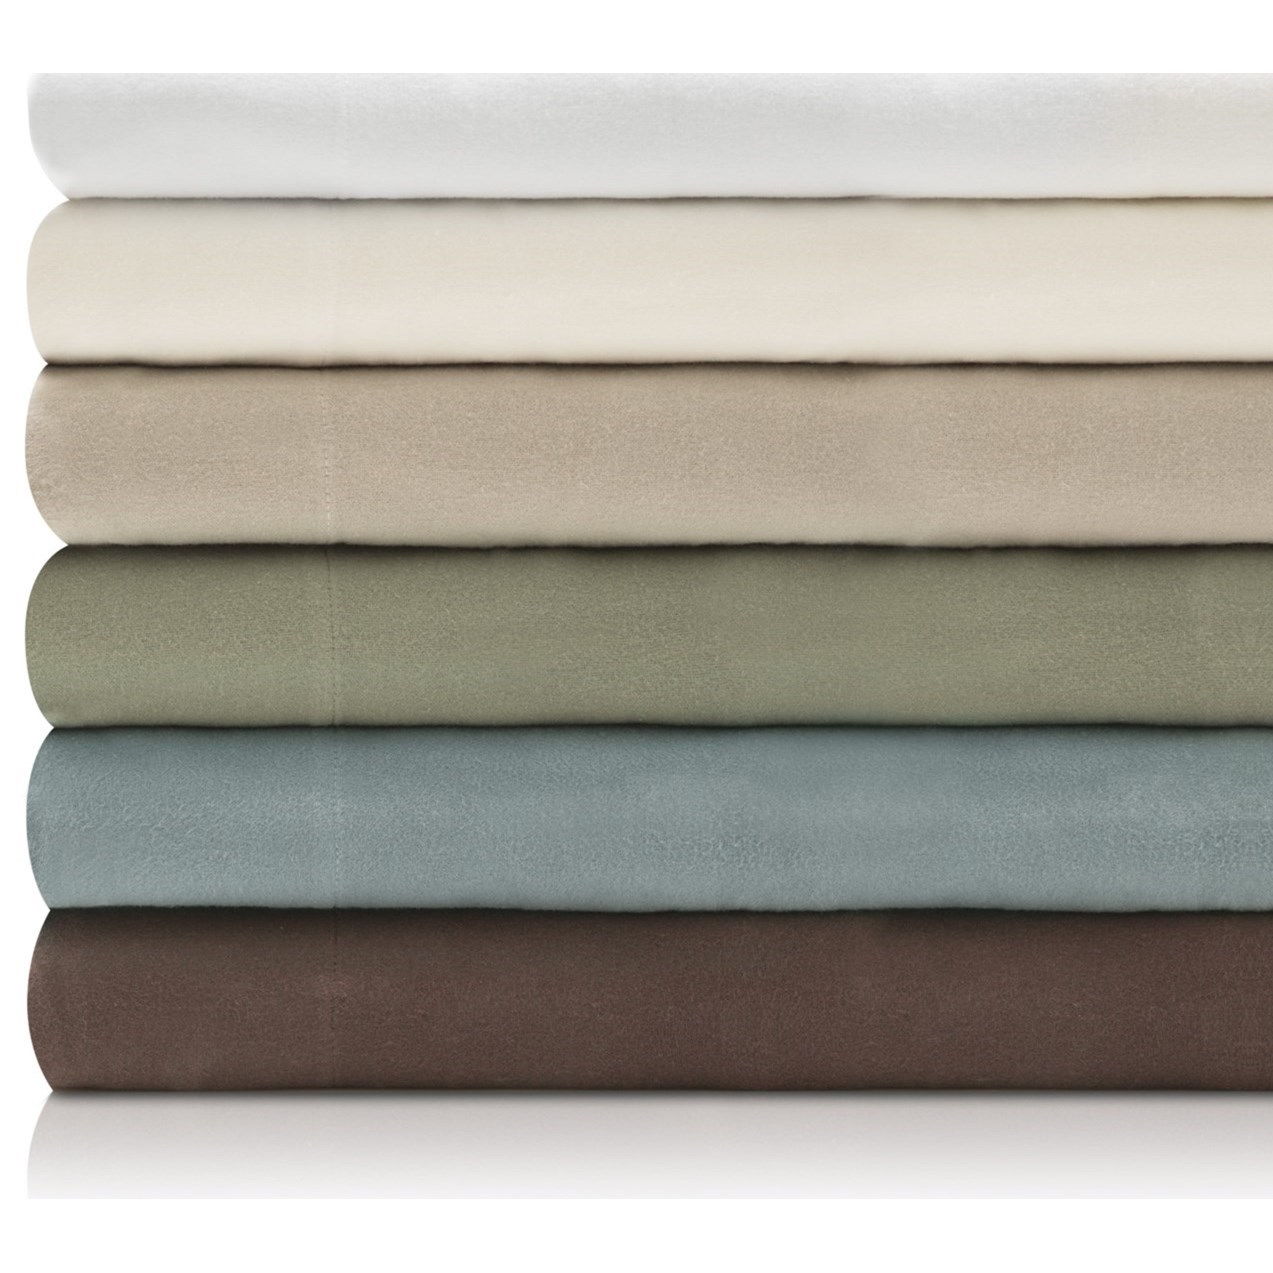 Malouf Portuguese Flannel Queen Woven™ Portuguese Flannel Sheet Set - Item Number: WO19QQPAFS